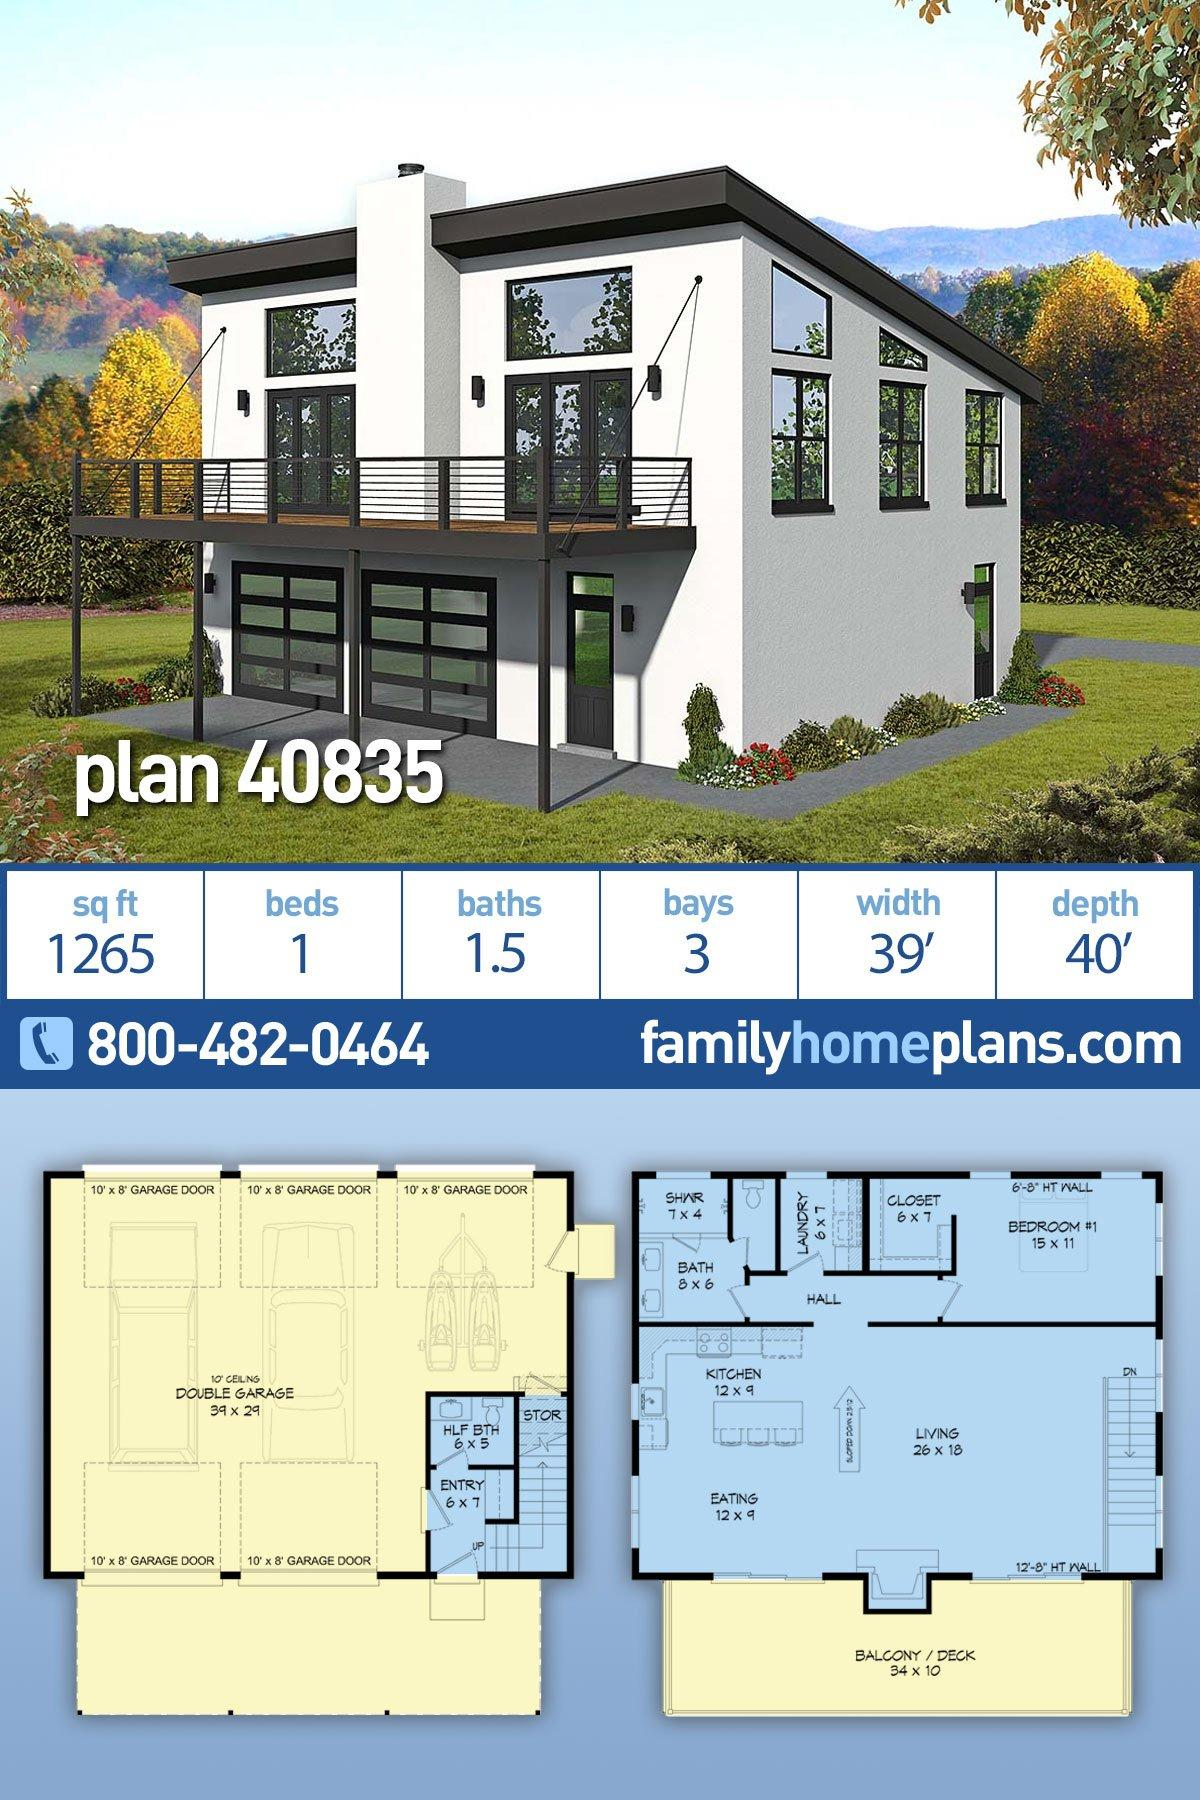 Coastal, Contemporary, Modern, Traditional House Plan 40835 with 1 Beds, 2 Baths, 3 Car Garage